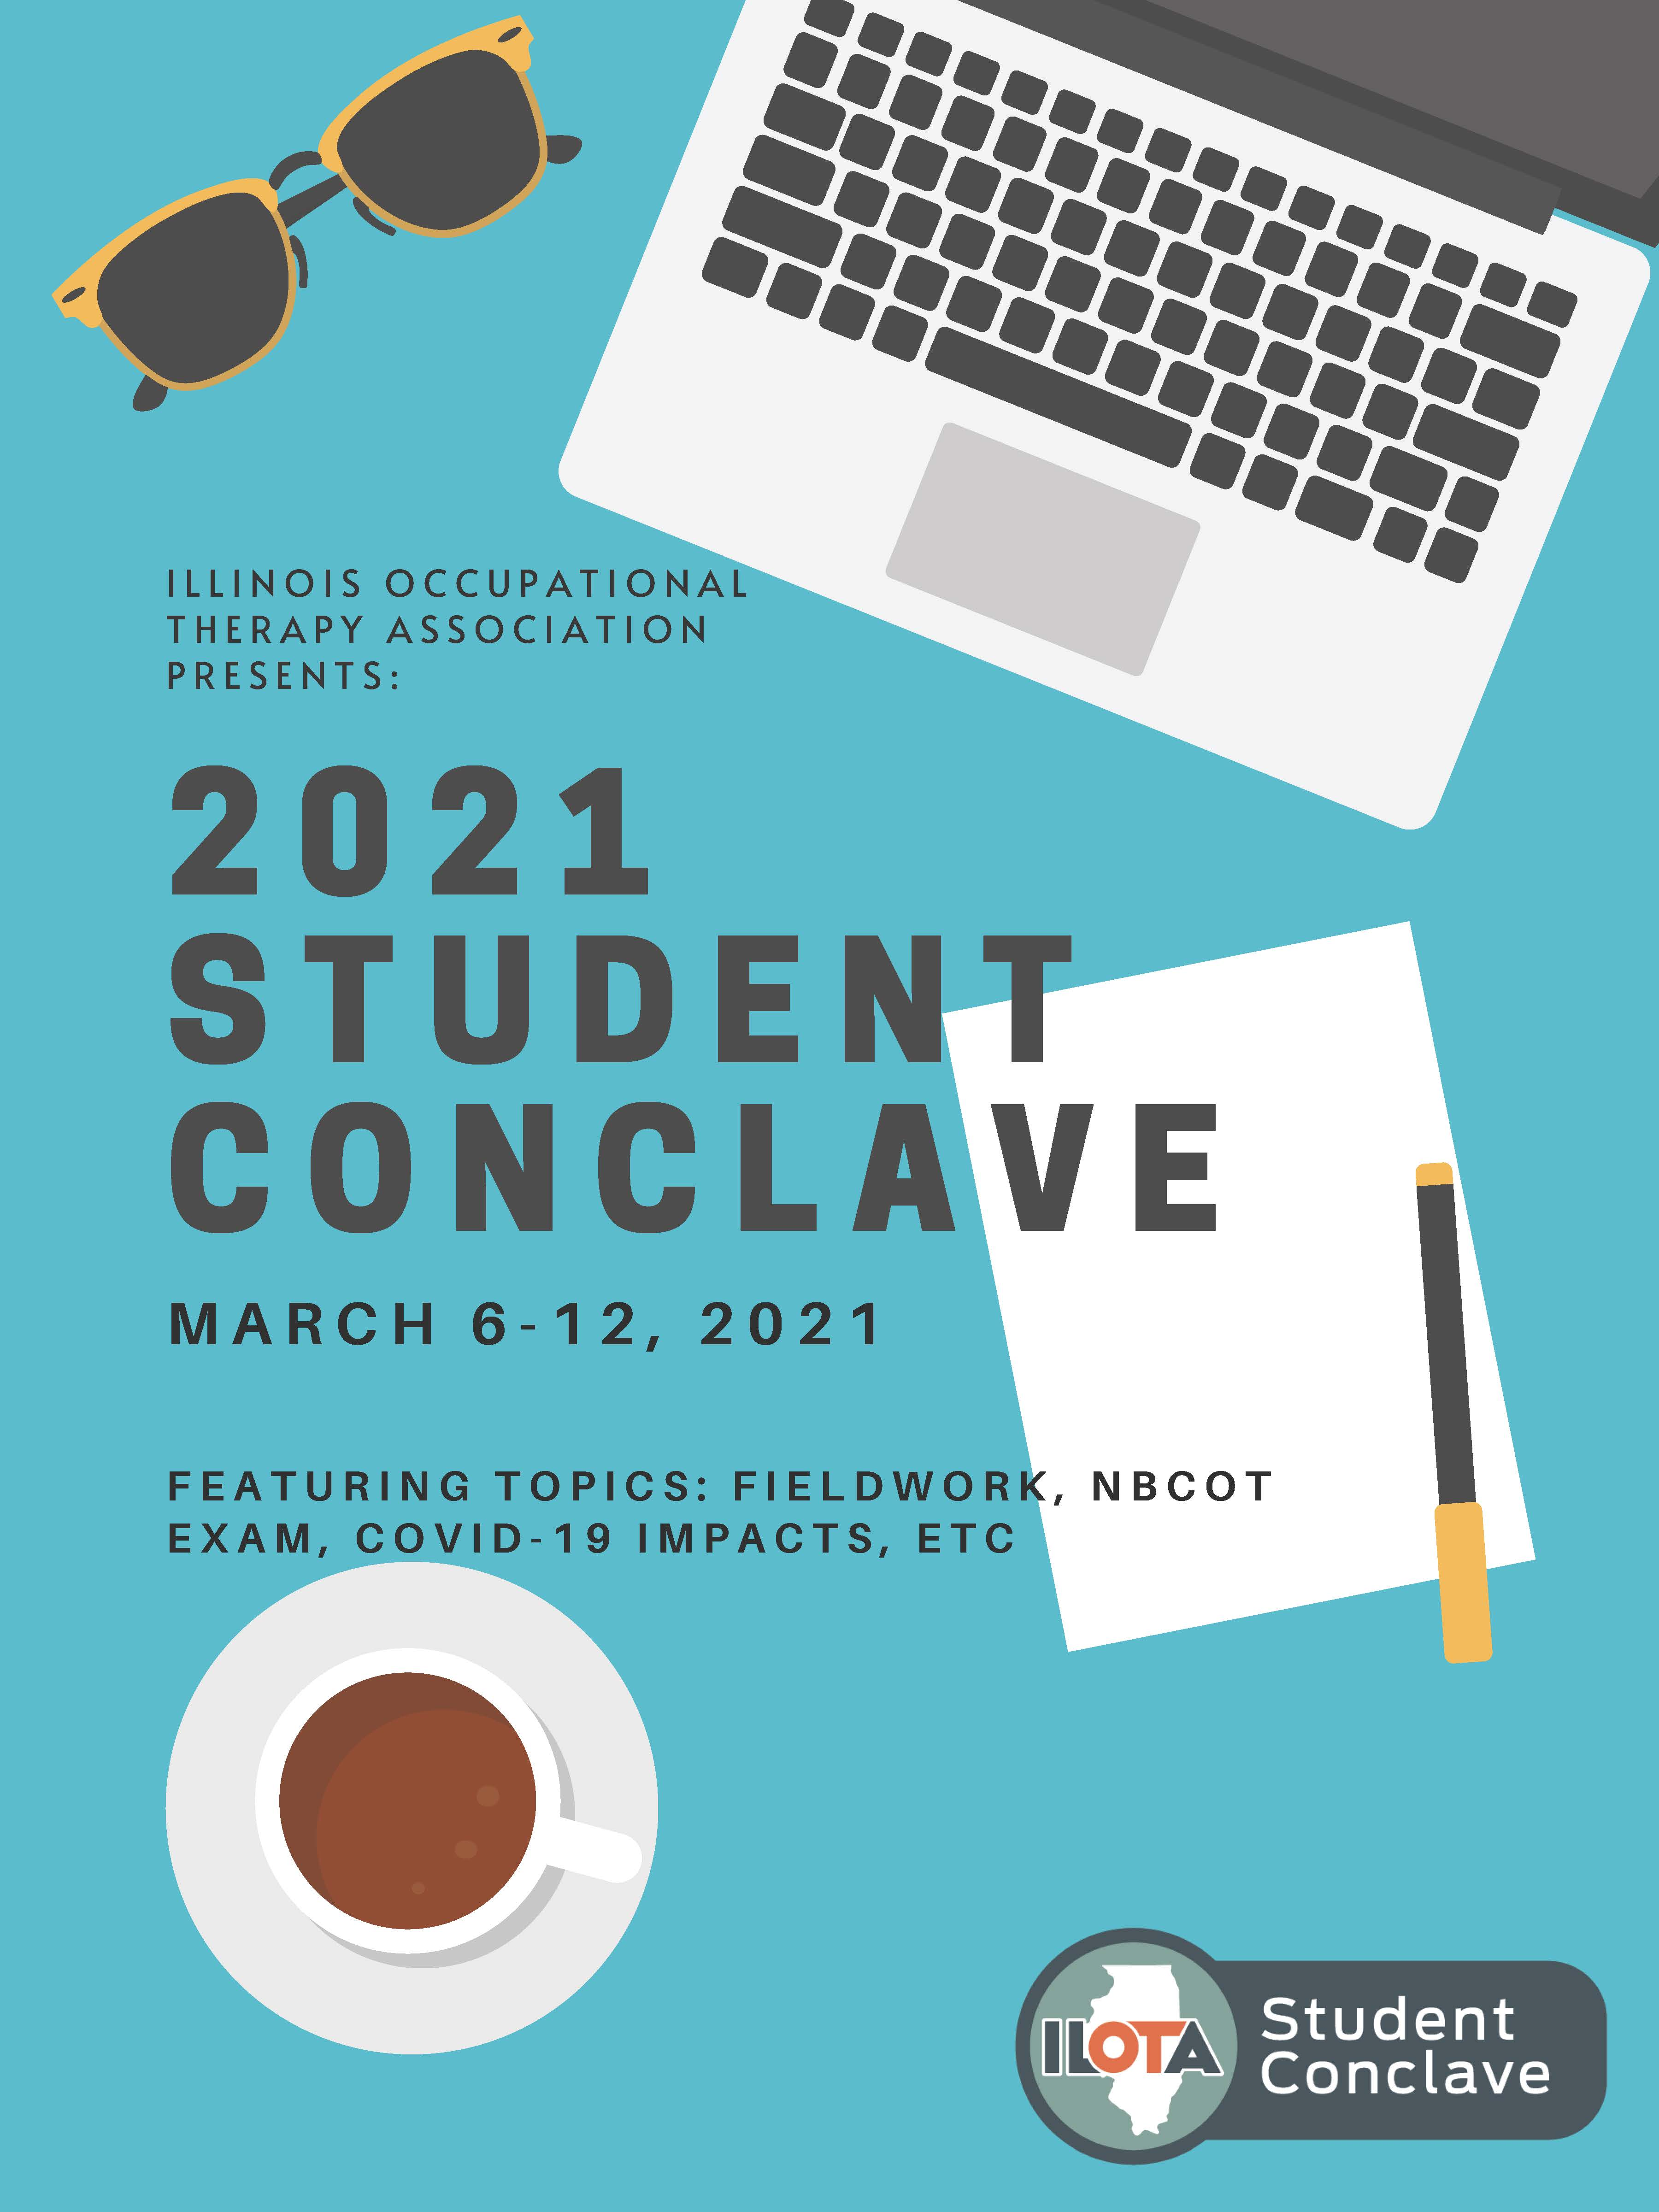 Flyer for the Student Conclave